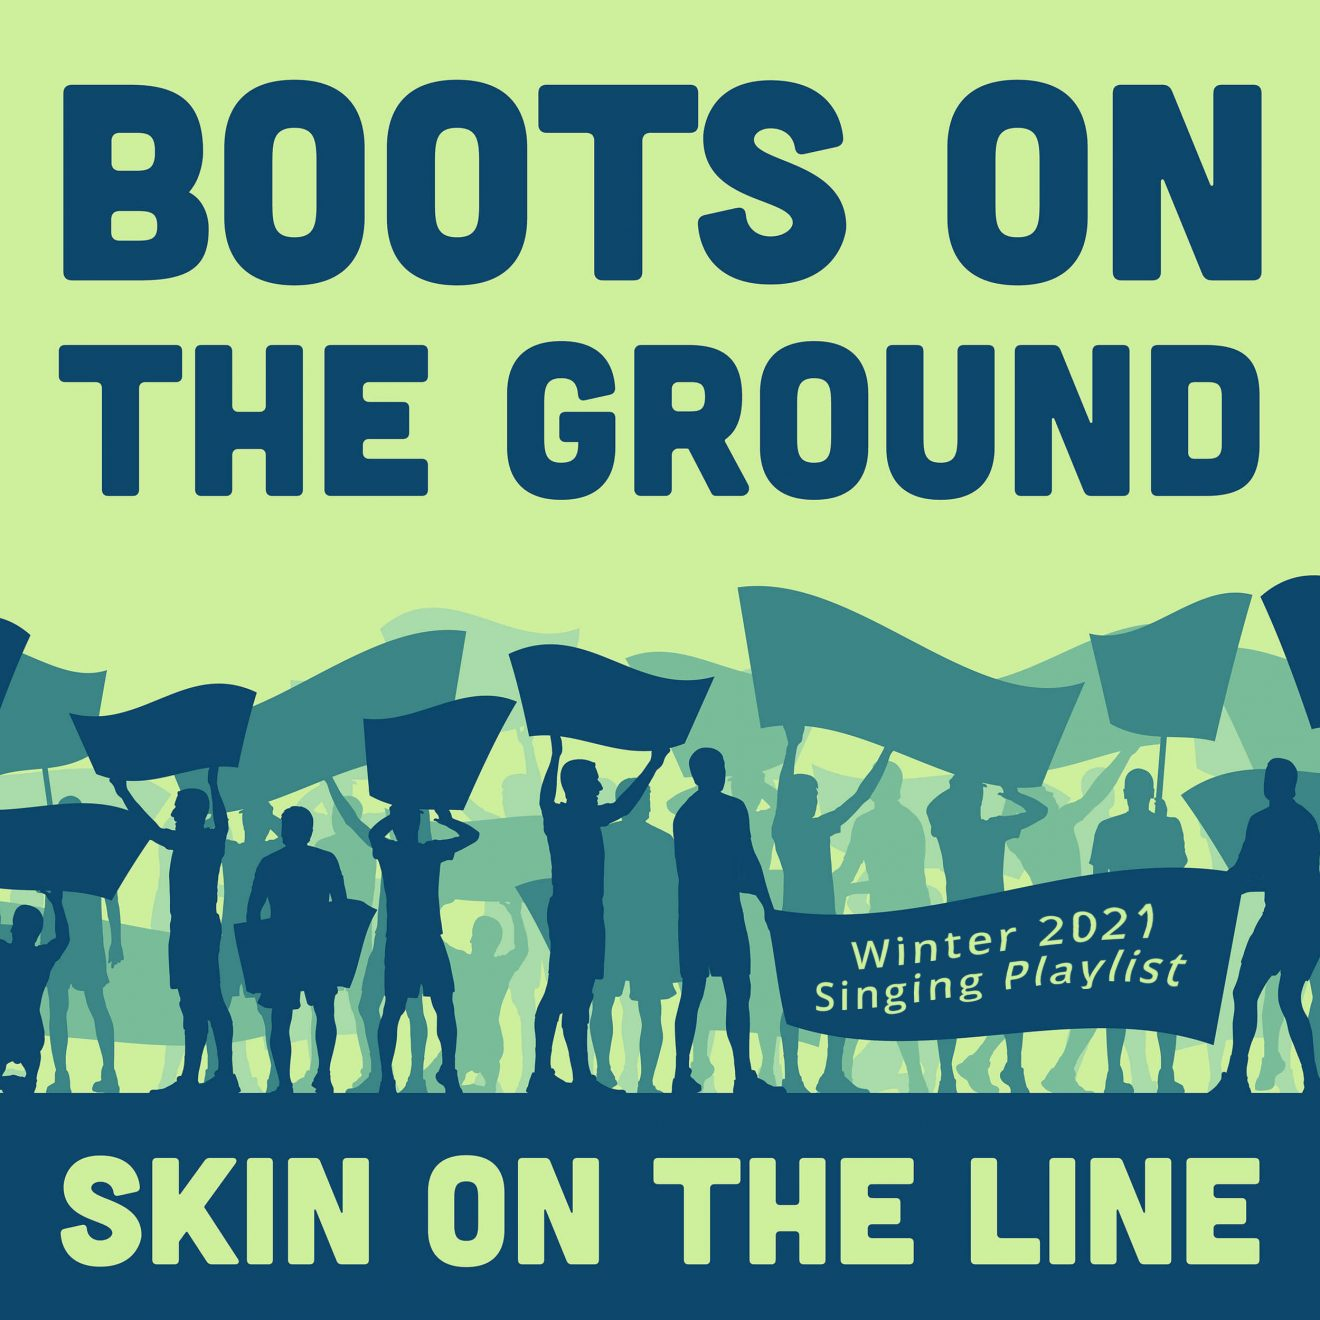 Boots on the Ground - Skin on the Line-playlist